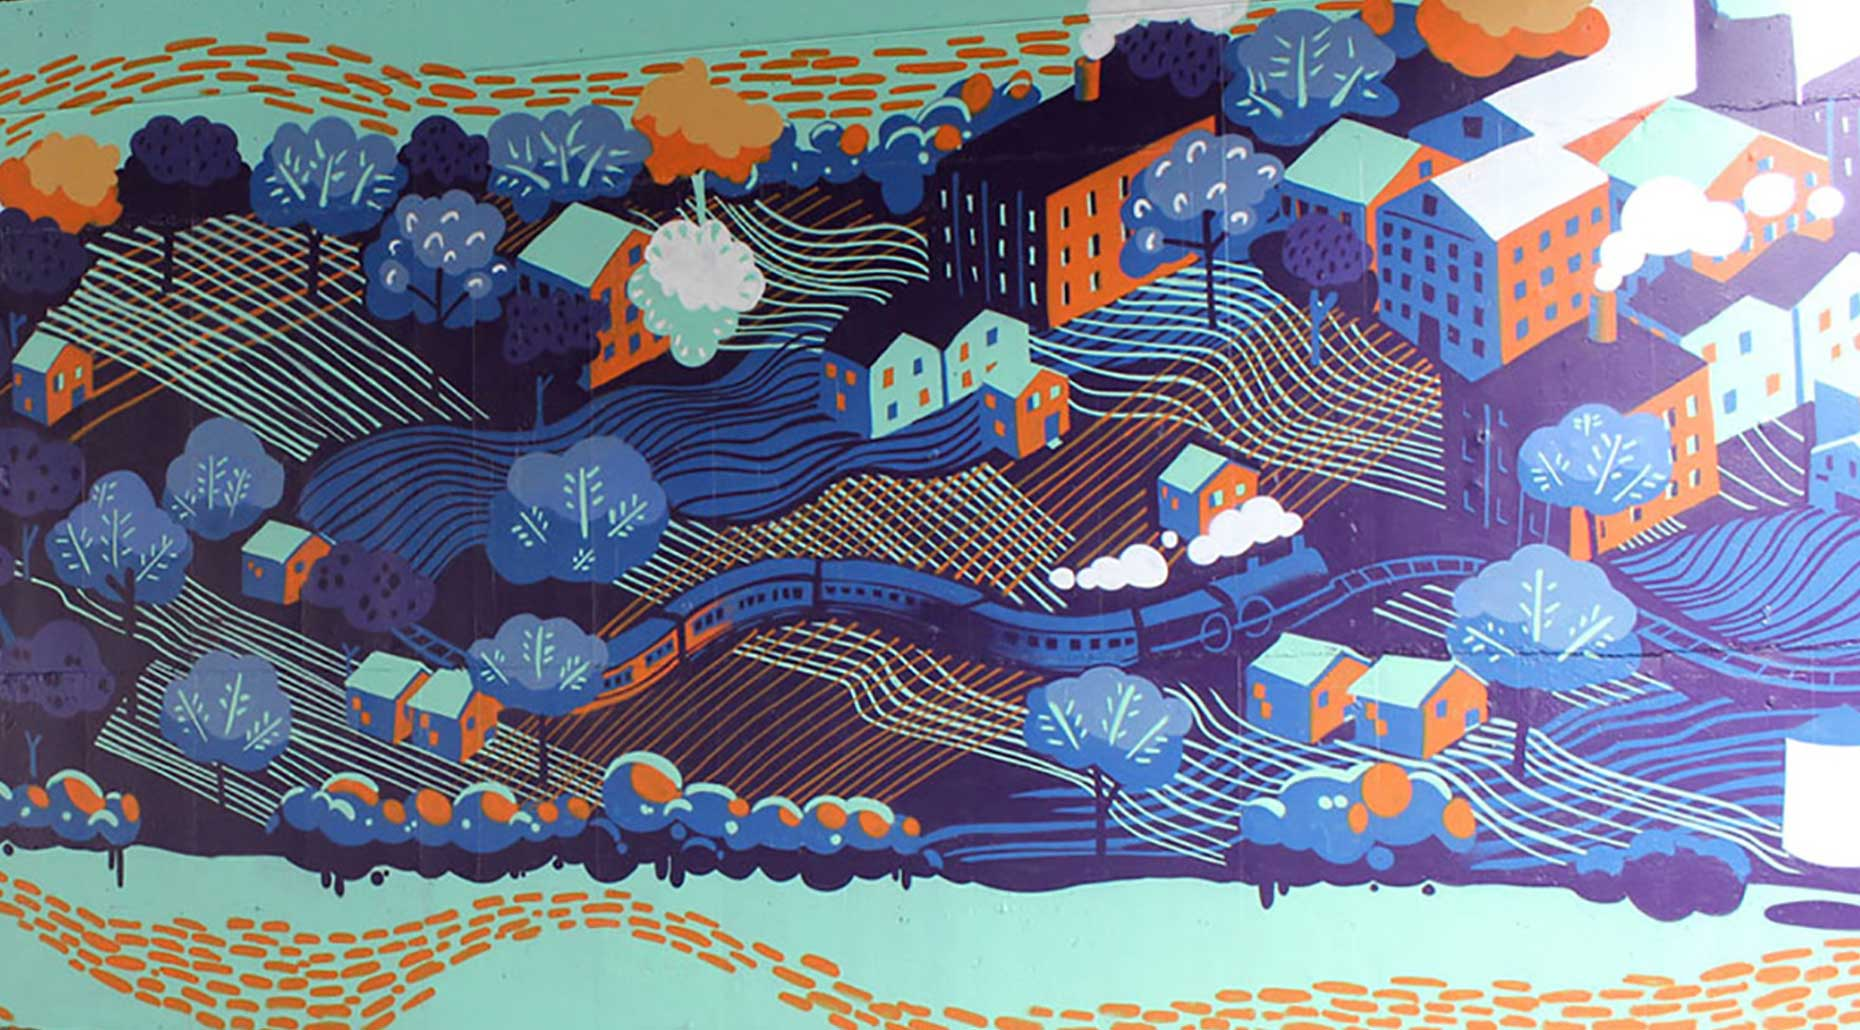 Painted wall mural with houses, trees and a train by Dinalie Dabarera for the City of Canada Bay. Image supplied by Dinalie Dabarera